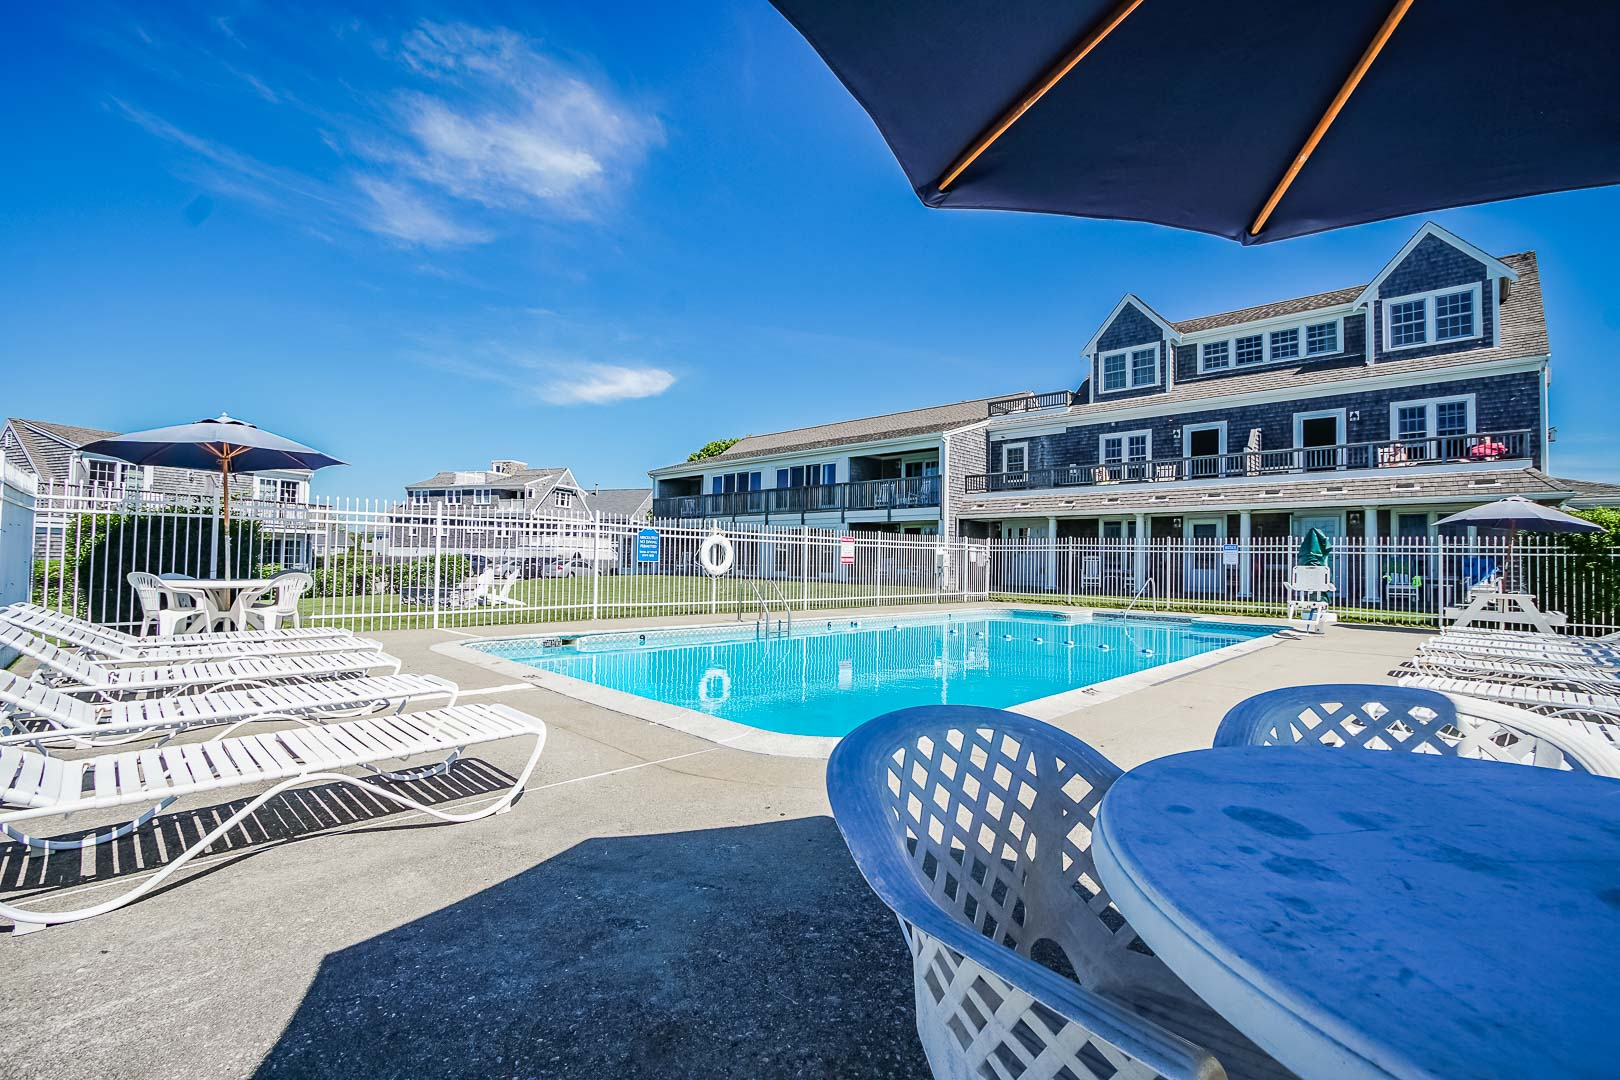 A refreshing pool at VRI's Beachside Village Resort in Massachusetts.